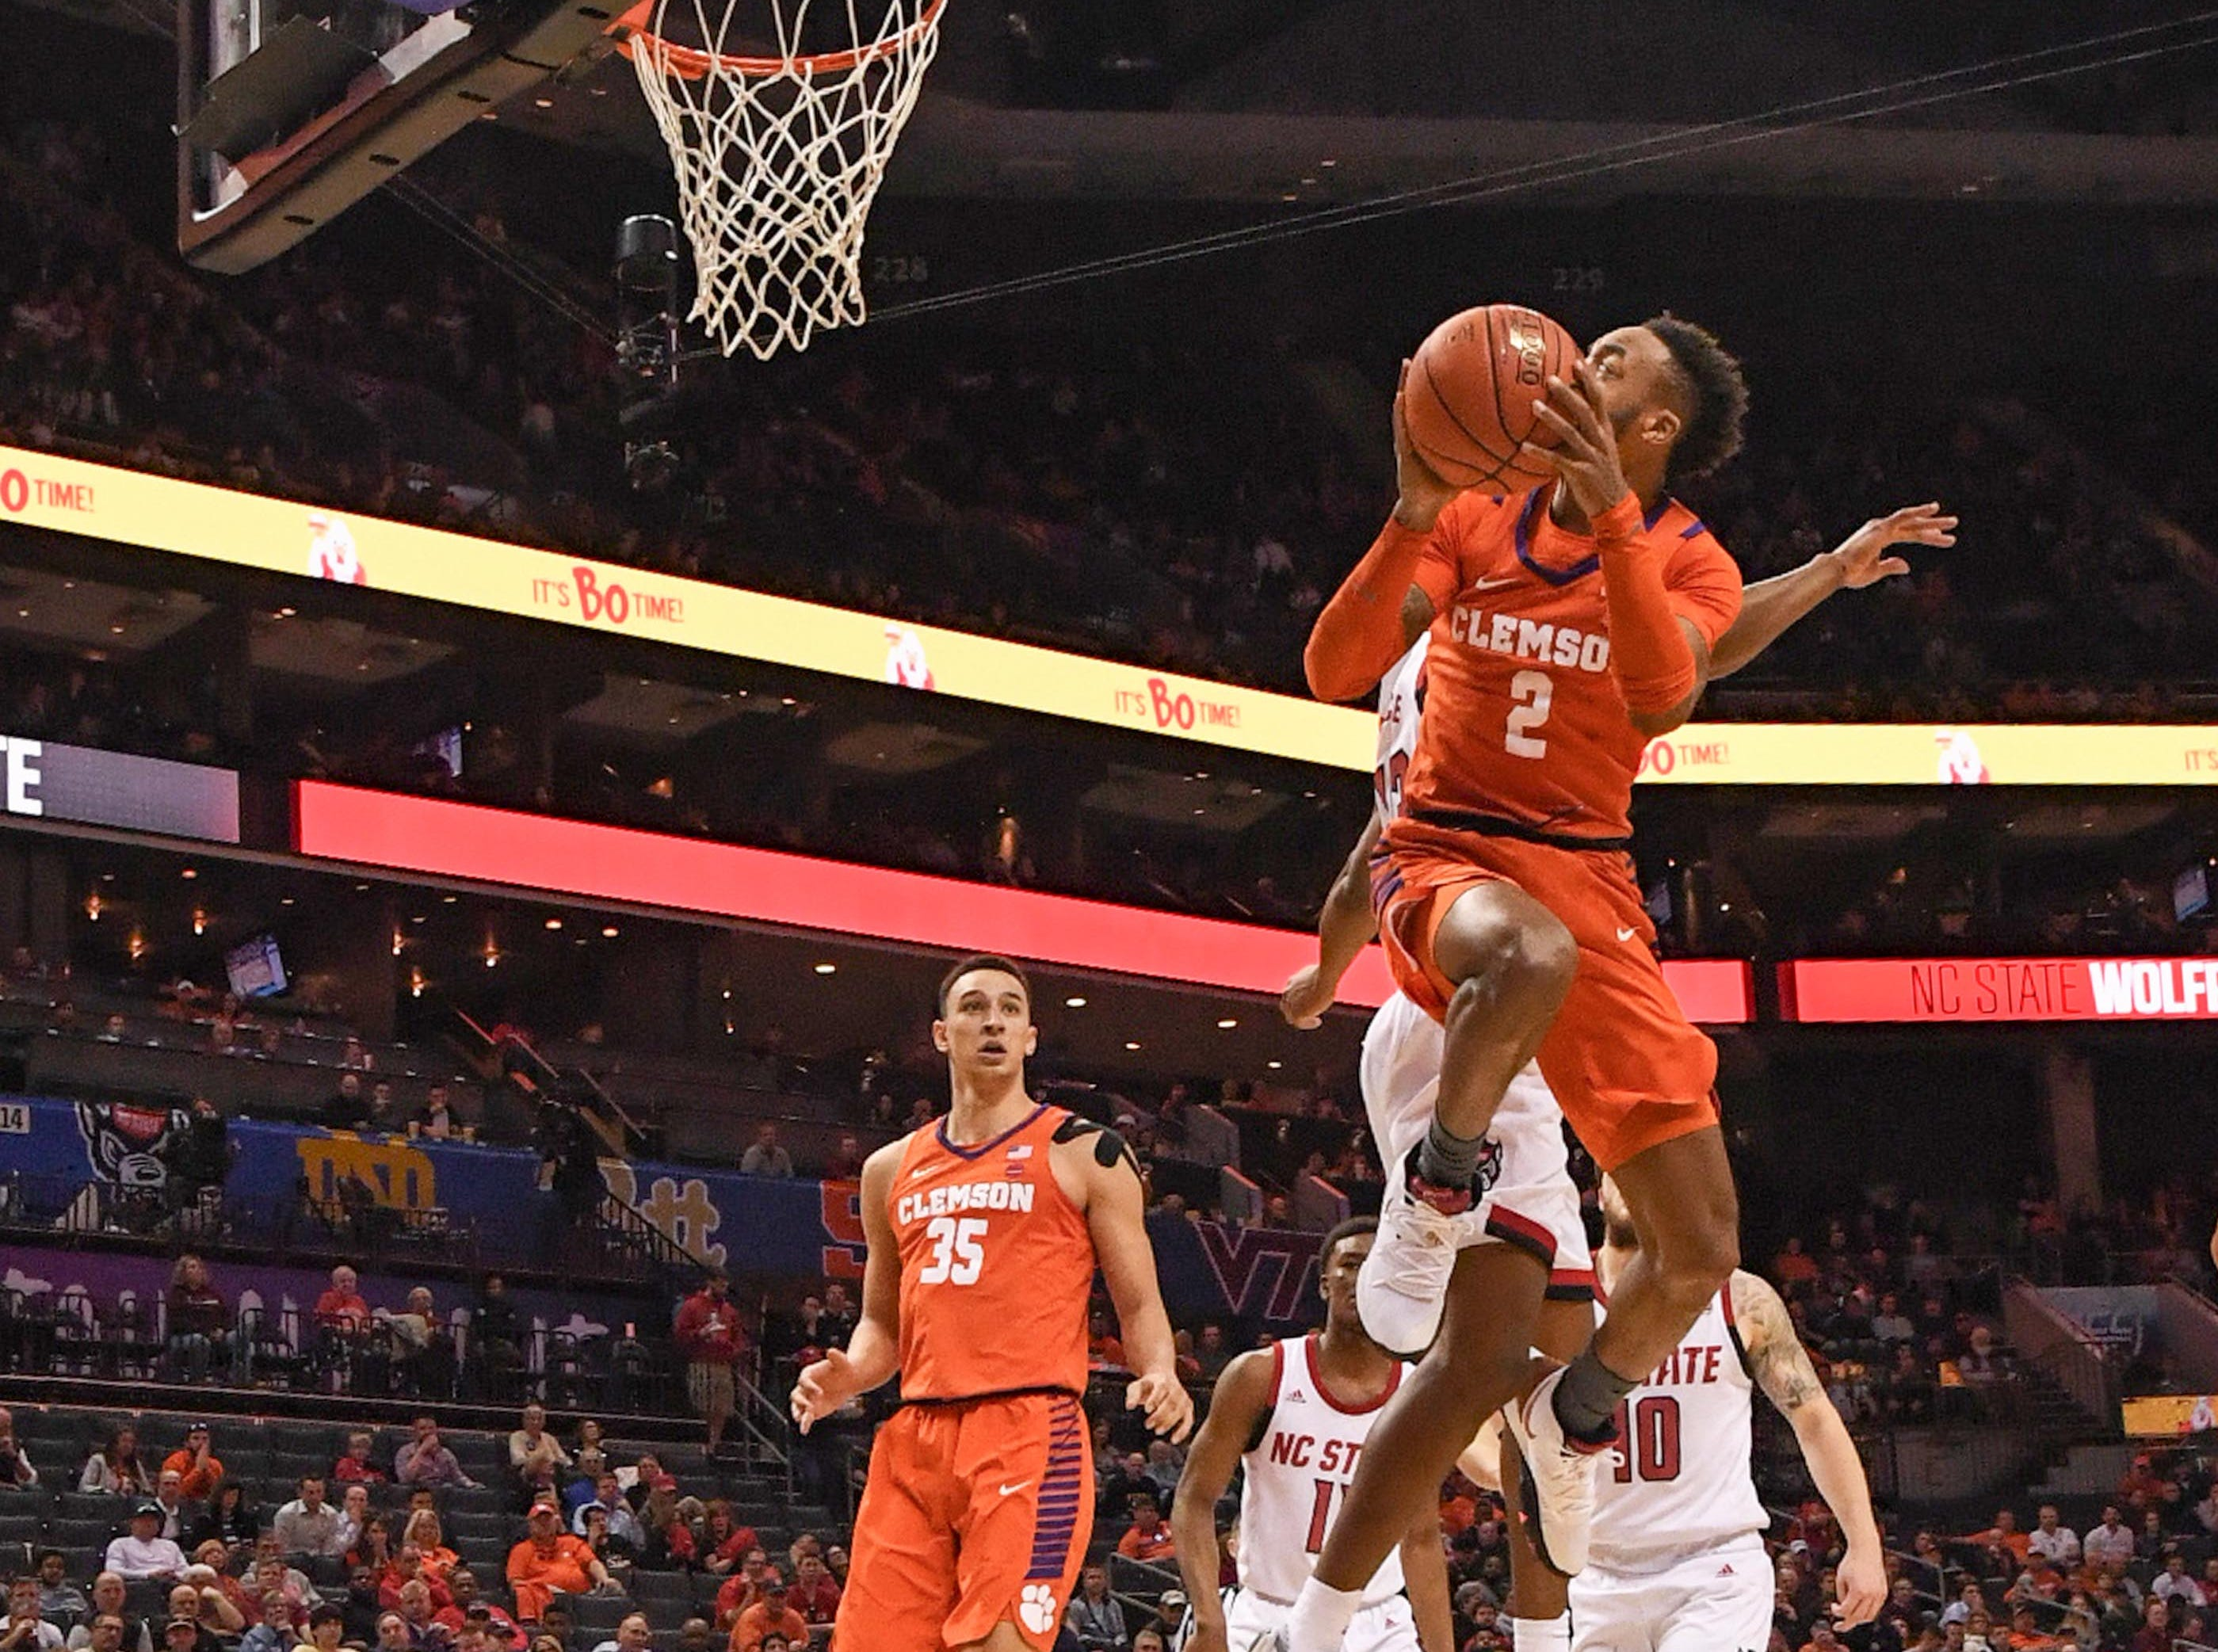 Clemson guard Marcquise Reed (2) shoots against N.C. State during the second half at the Spectrum Center in Charlotte, N.C. Tuesday, March 12, 2019.